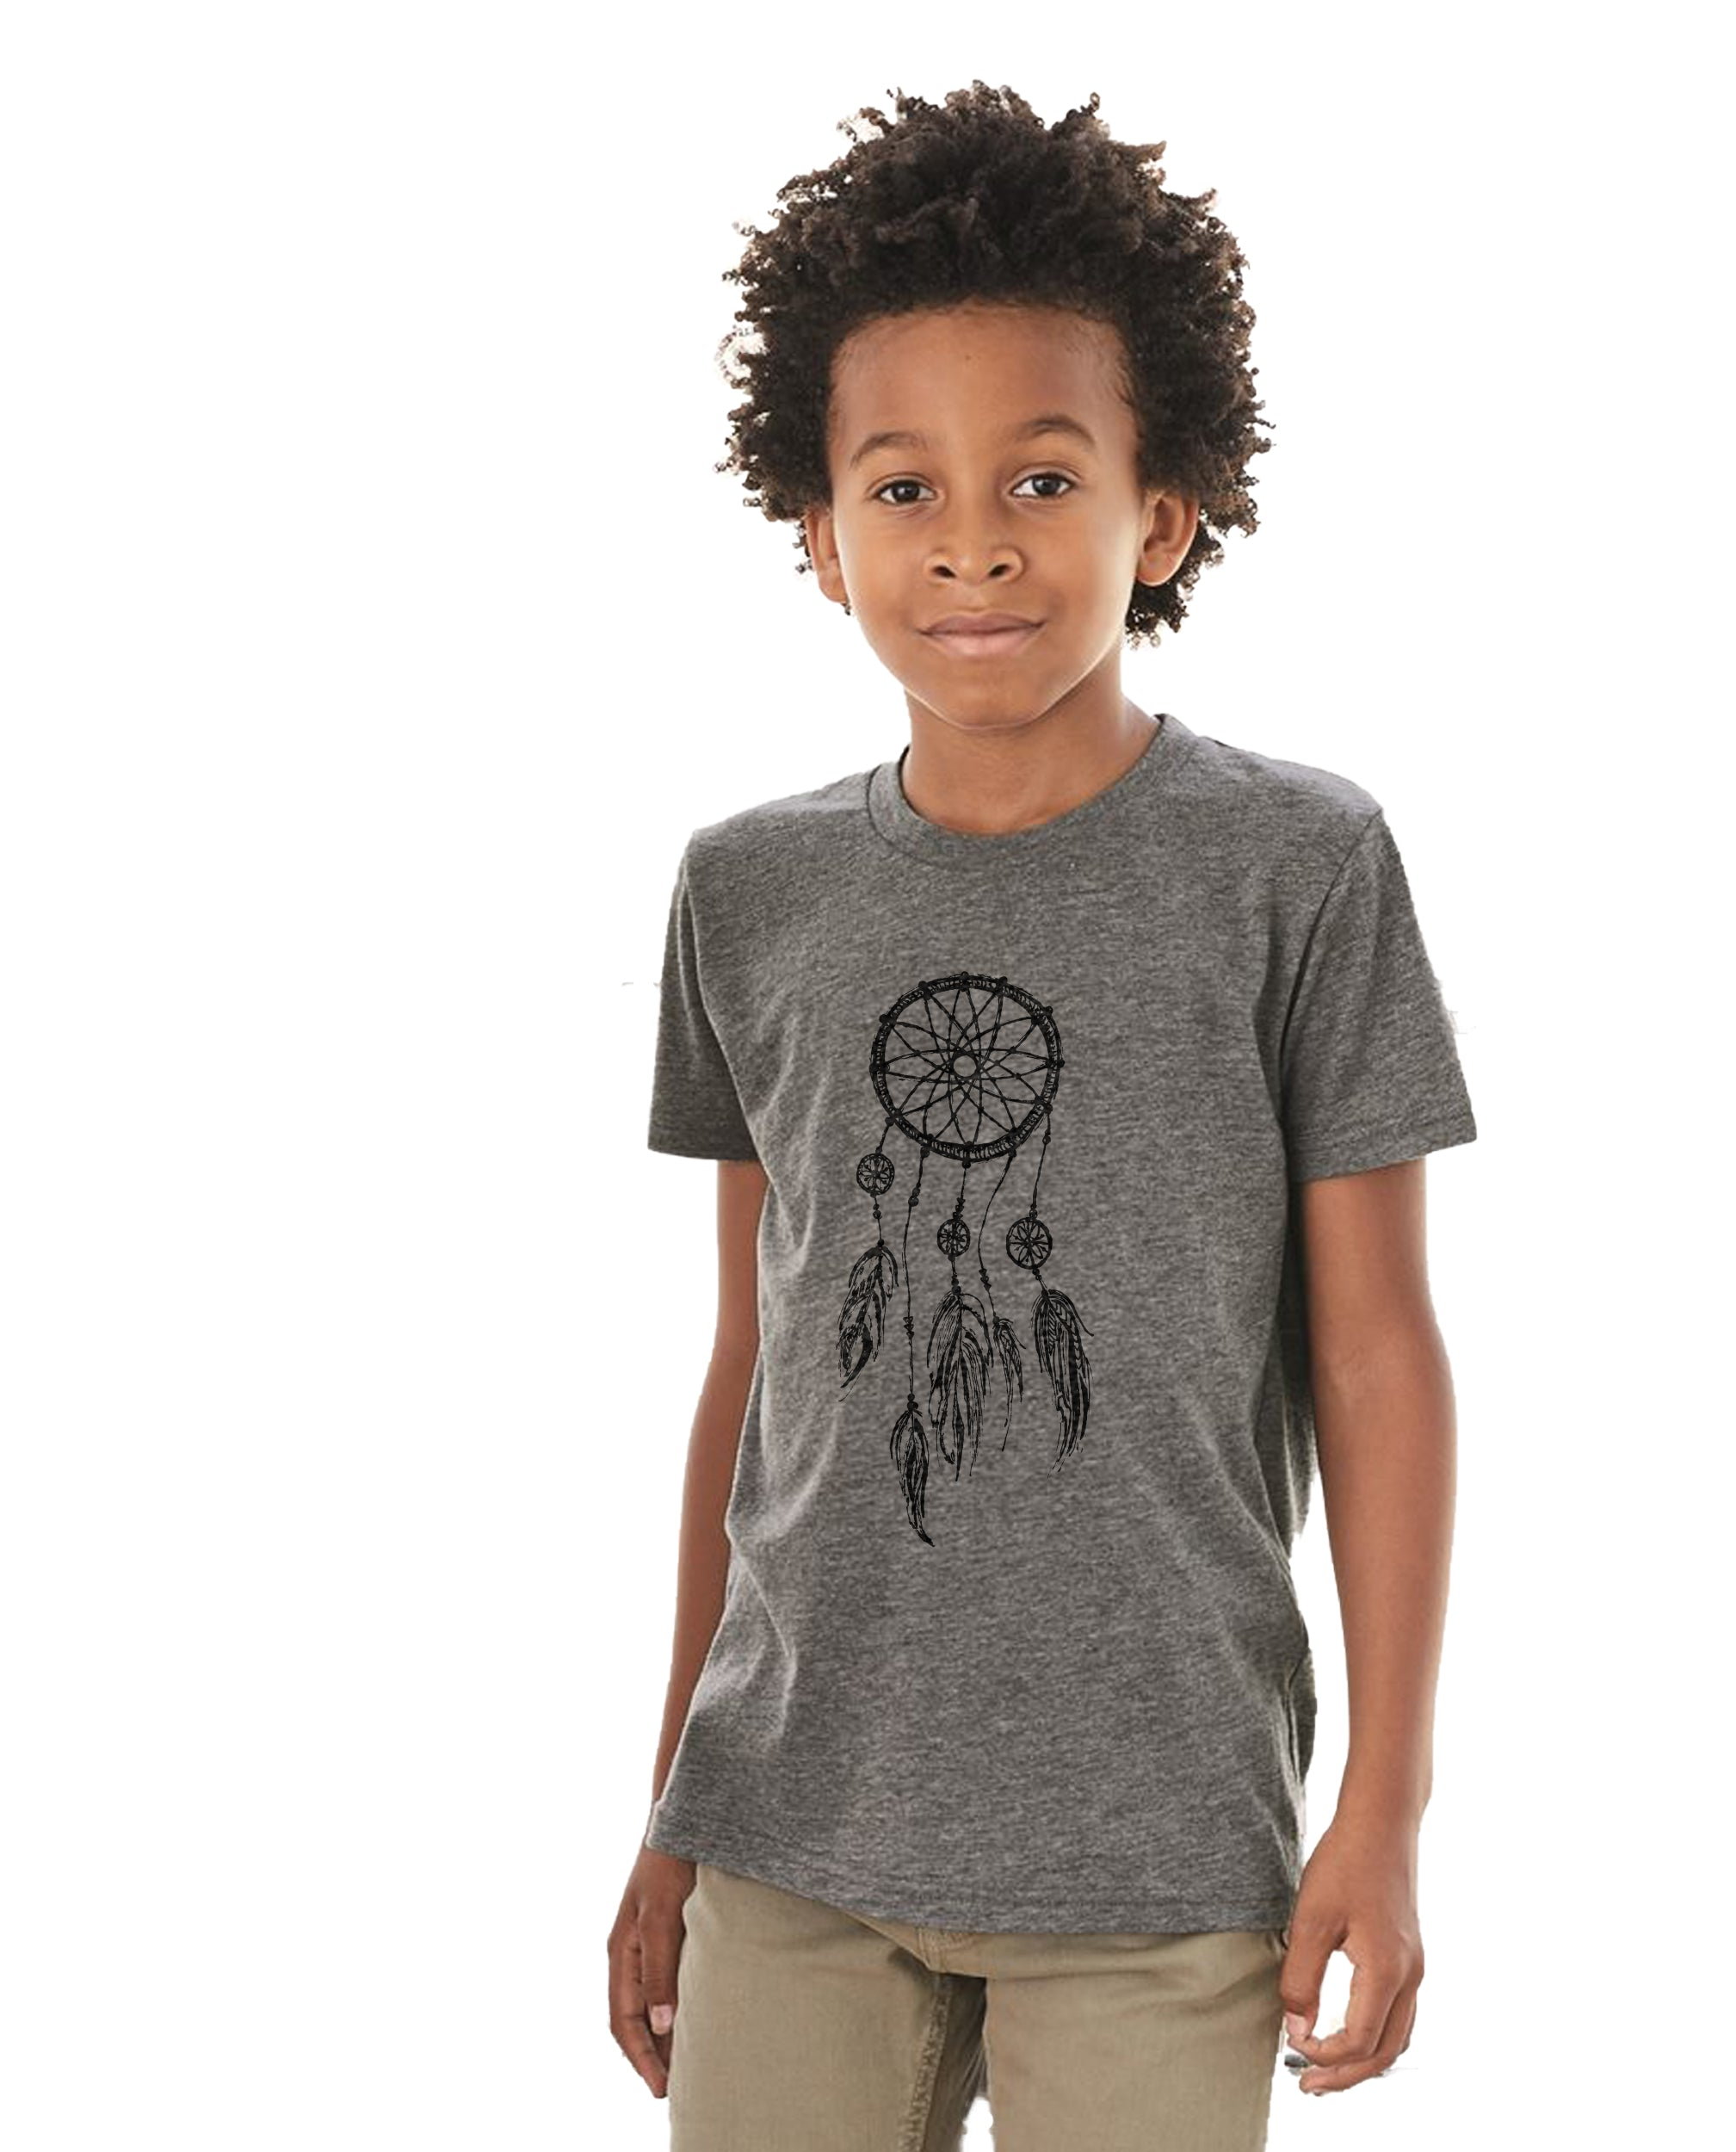 Dream Catcher Boy's Premium Short Sleeve Crew